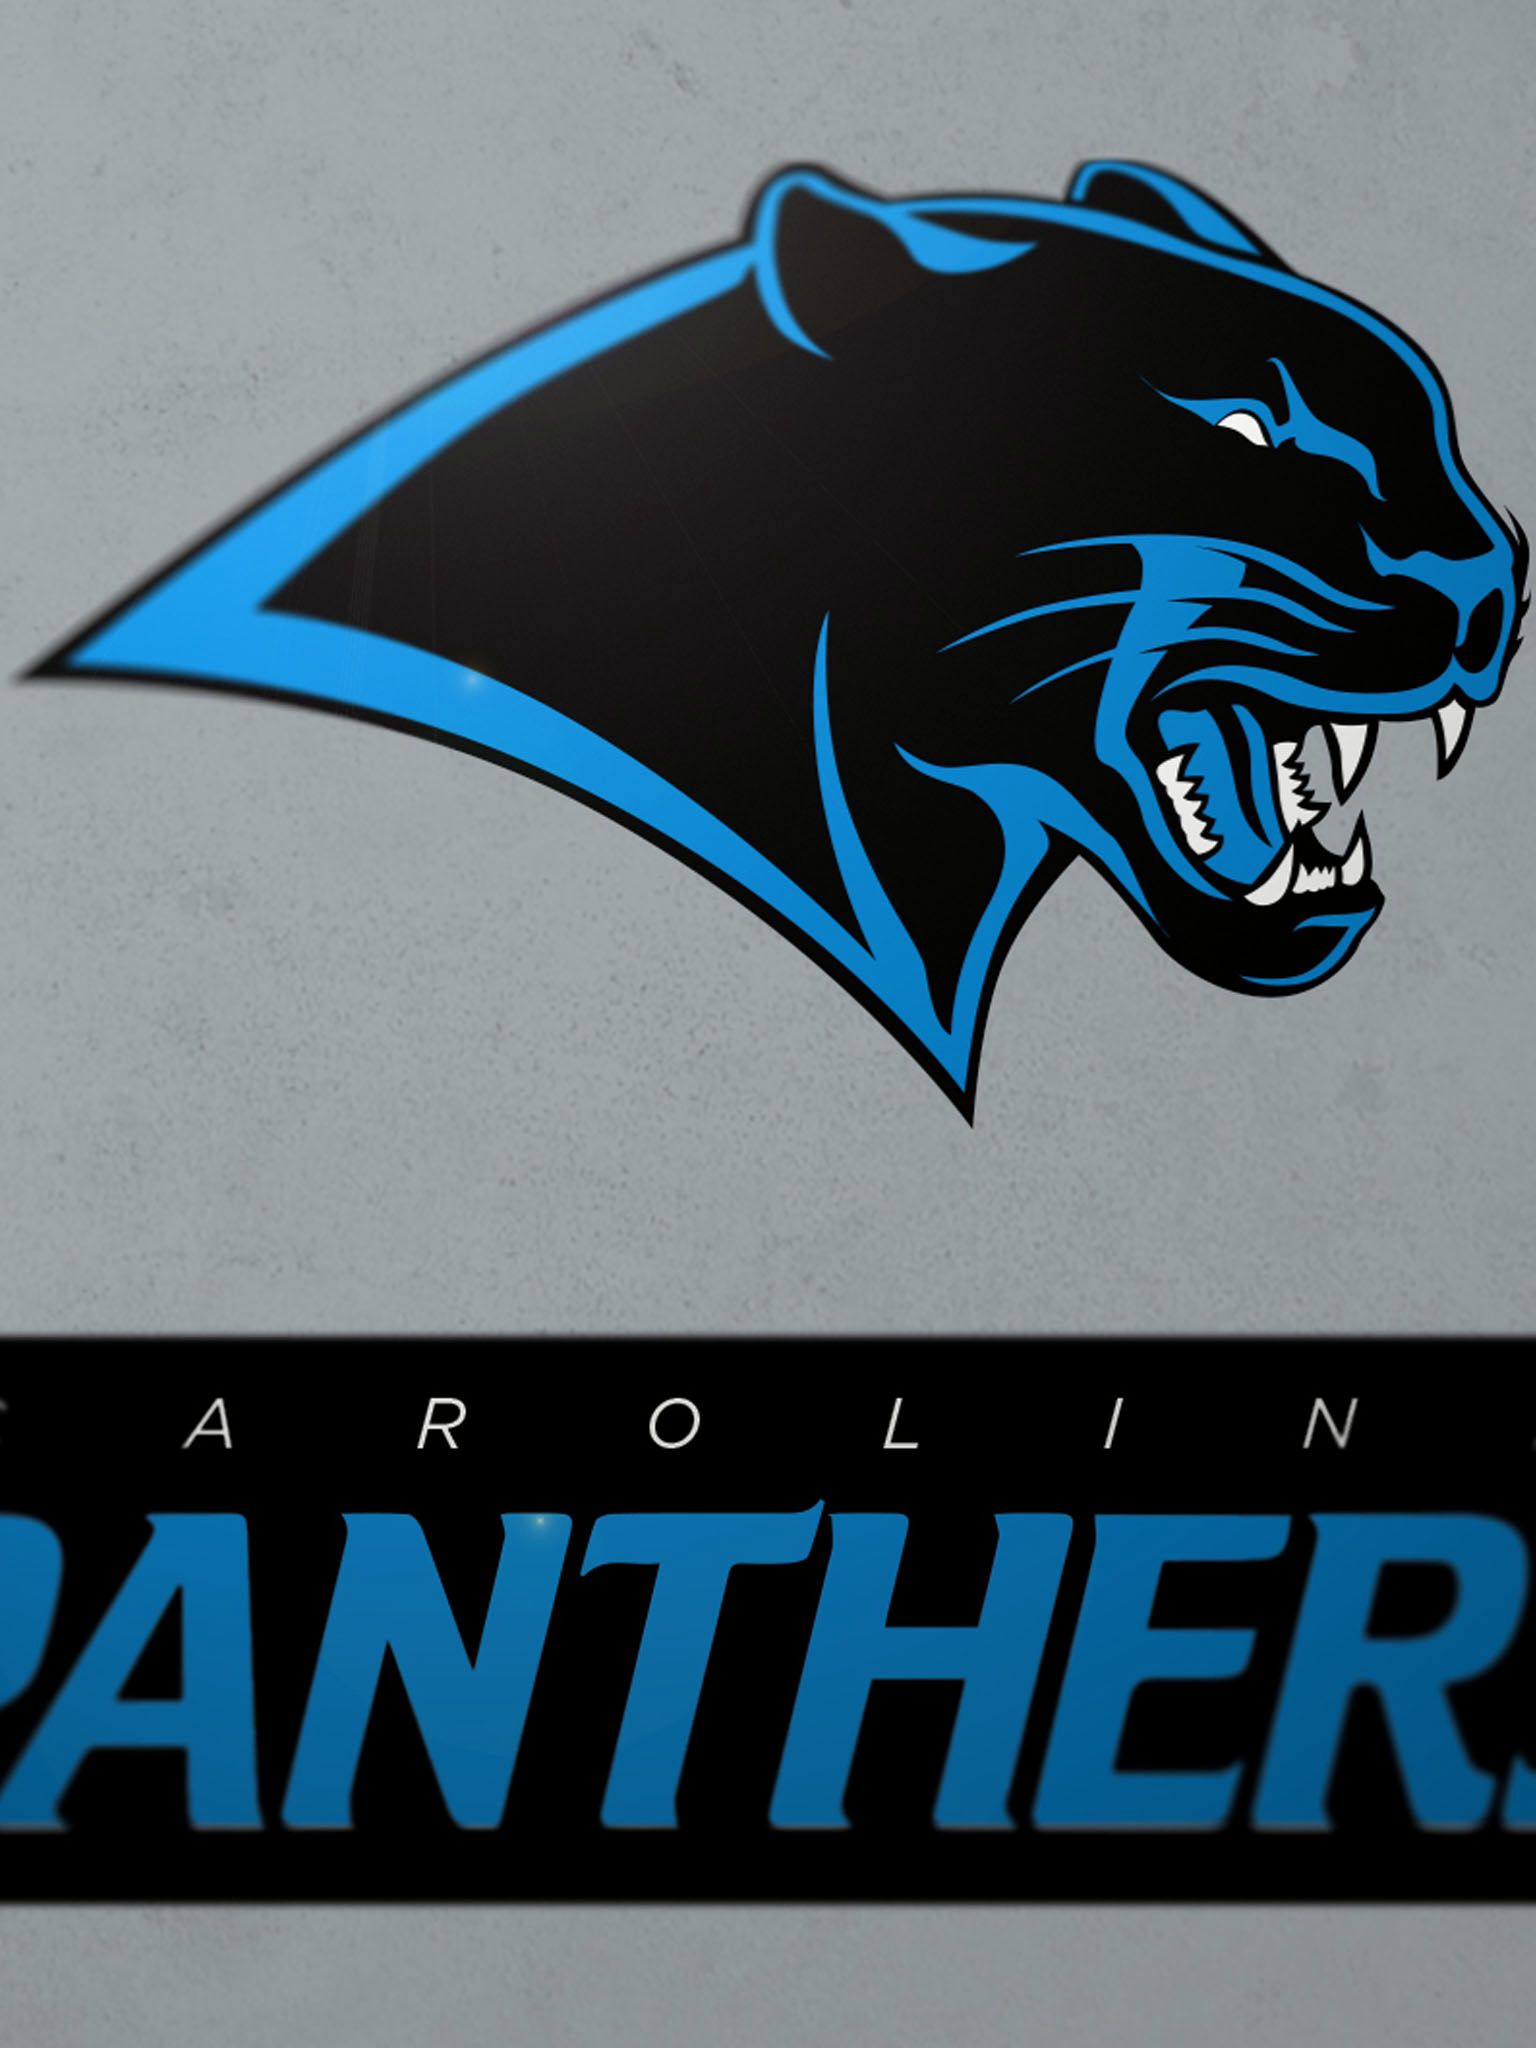 Pin sports logopng on pinterest - Redesigned Nfl Logos For All 32 Teams The Penalty Flag Carolina Panthers